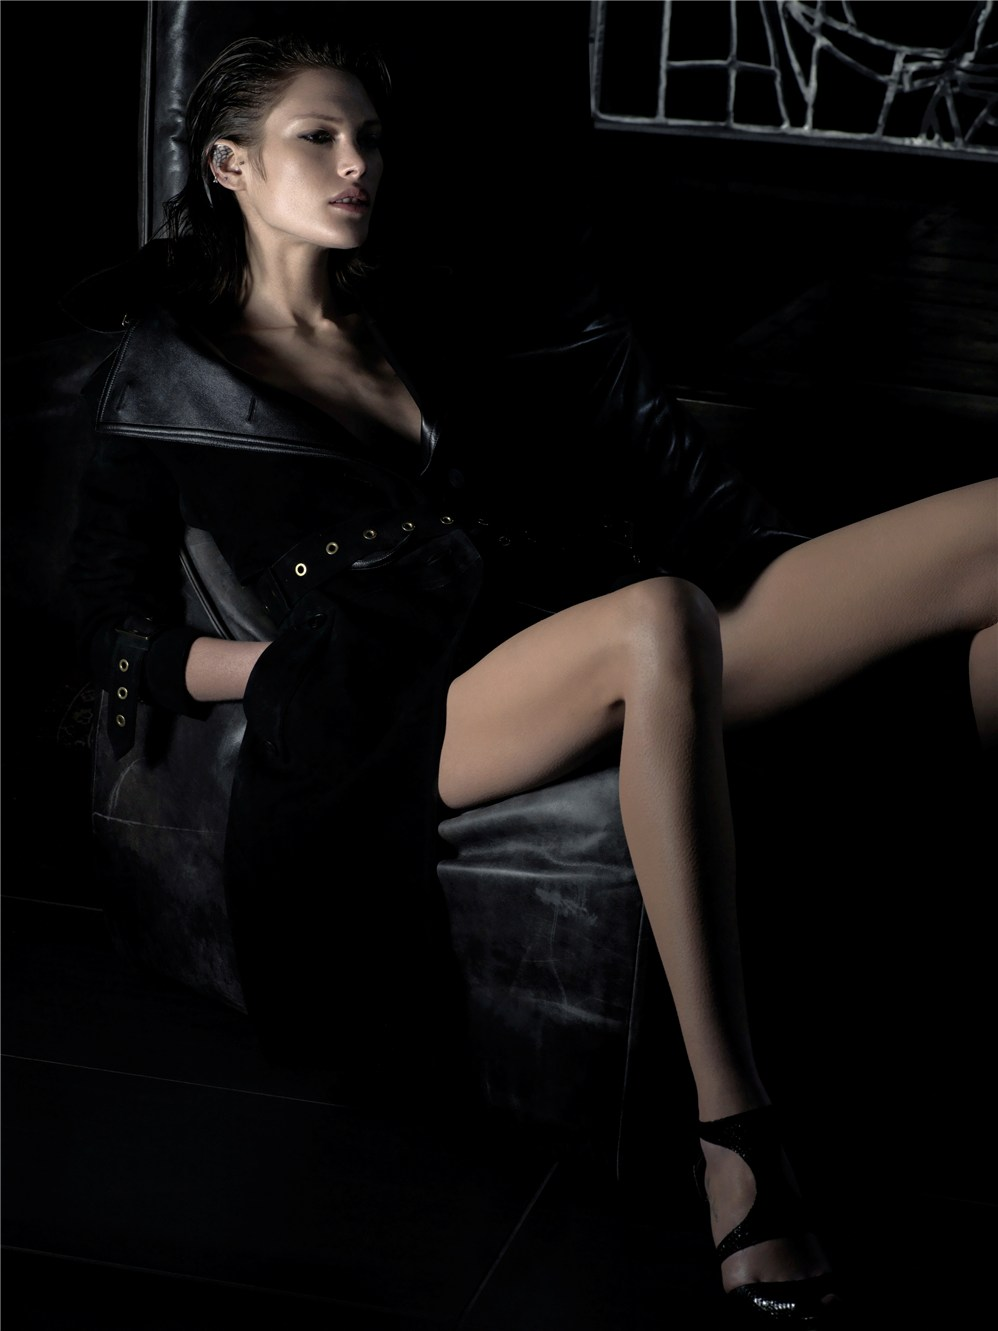 Кэтрин МакНейл / Catherine McNeil by Wing Shya in Numero may 2013